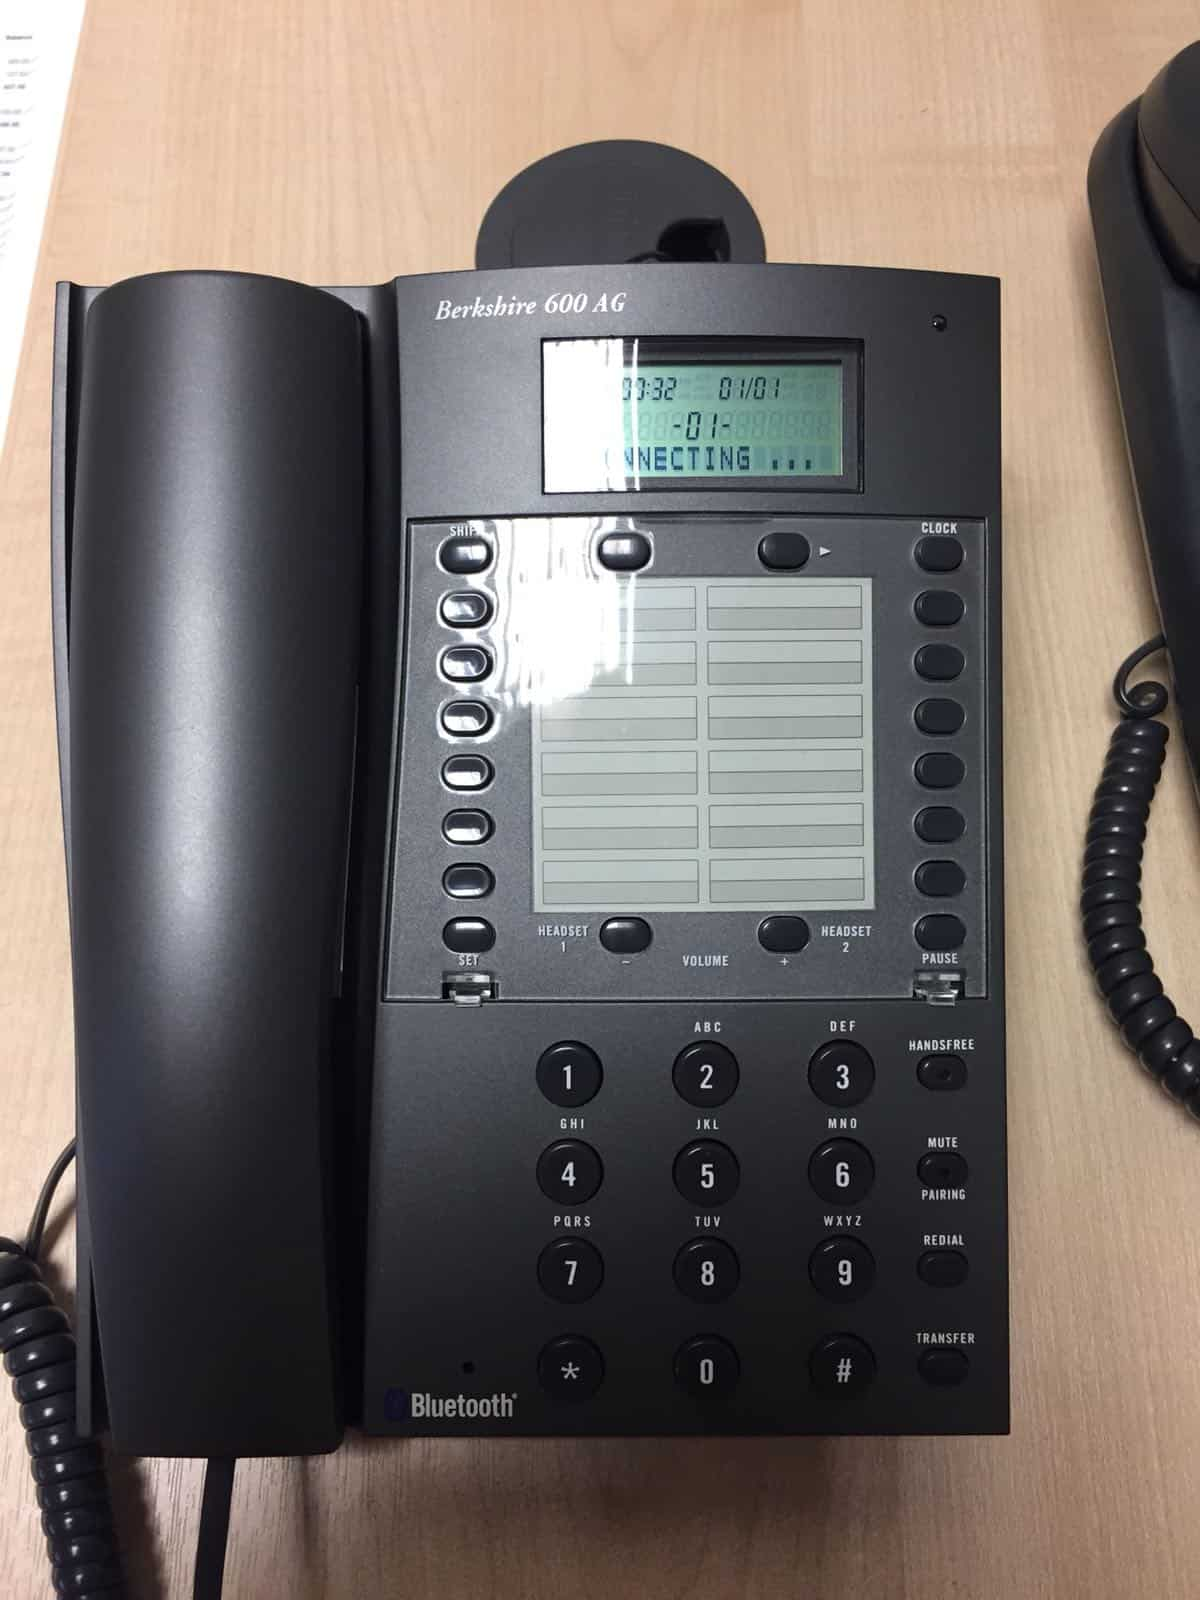 Bluetooth business phone and OTICON CONNECTCLIP